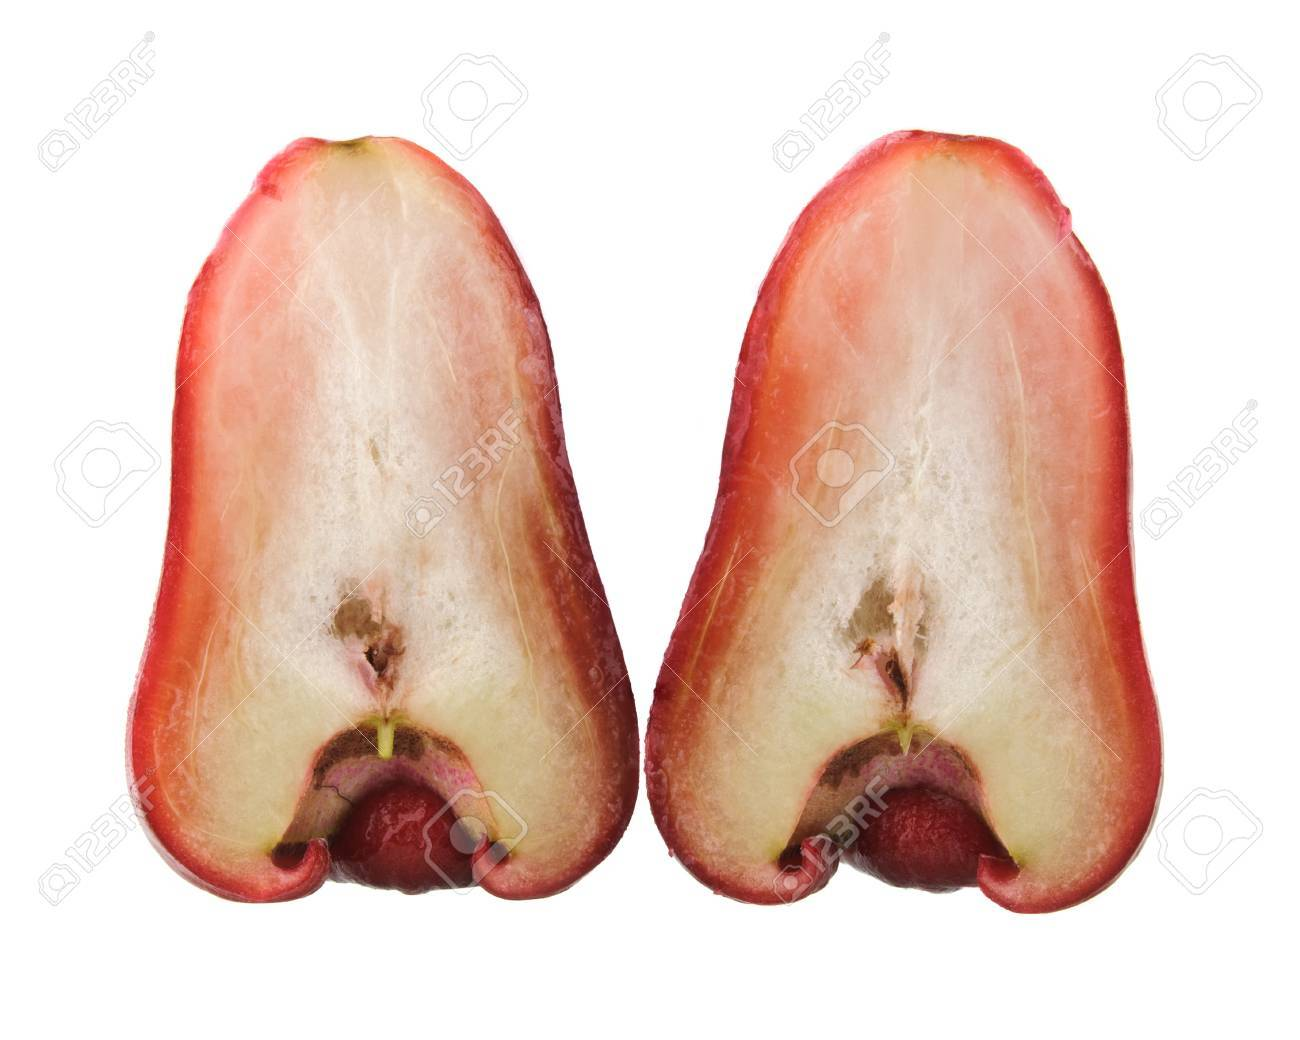 Red rose apple cut in half and isolated on white. Its scientific name is